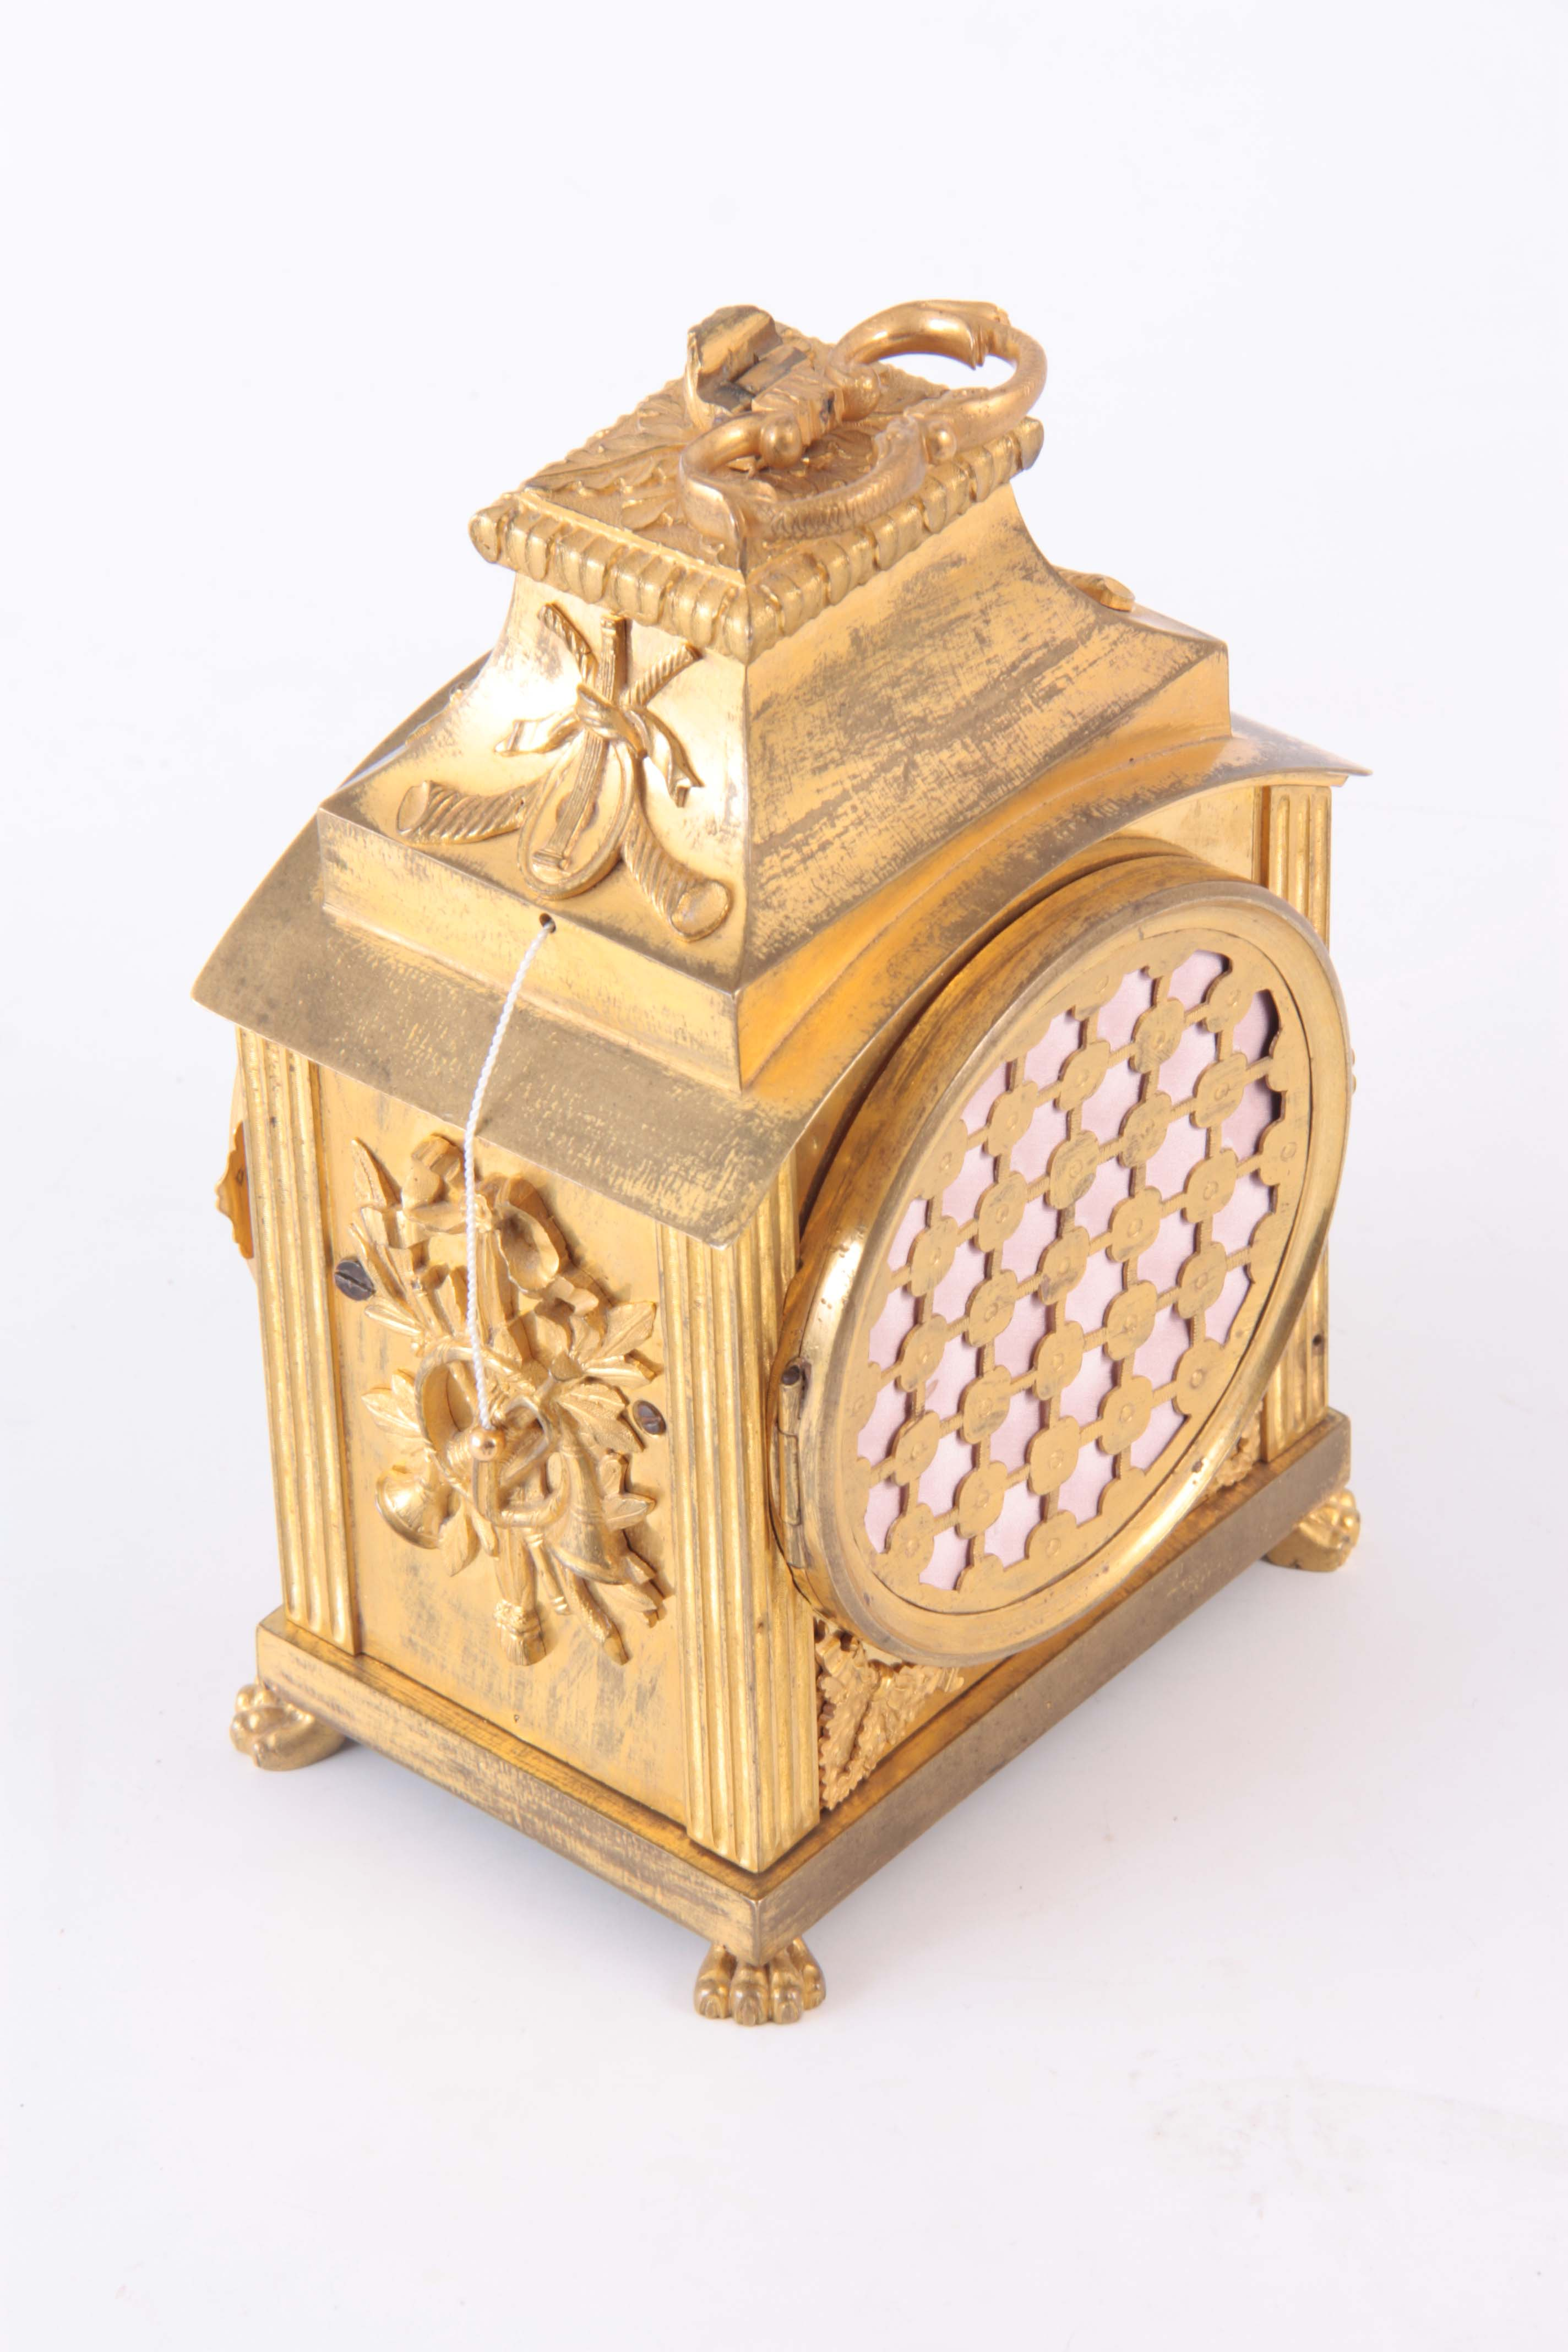 AN 18th CENTURY SWISS PENDULE D'OFFICIERS CARRIAGE CLOCK the ormolu case with applied mounts - Image 3 of 4